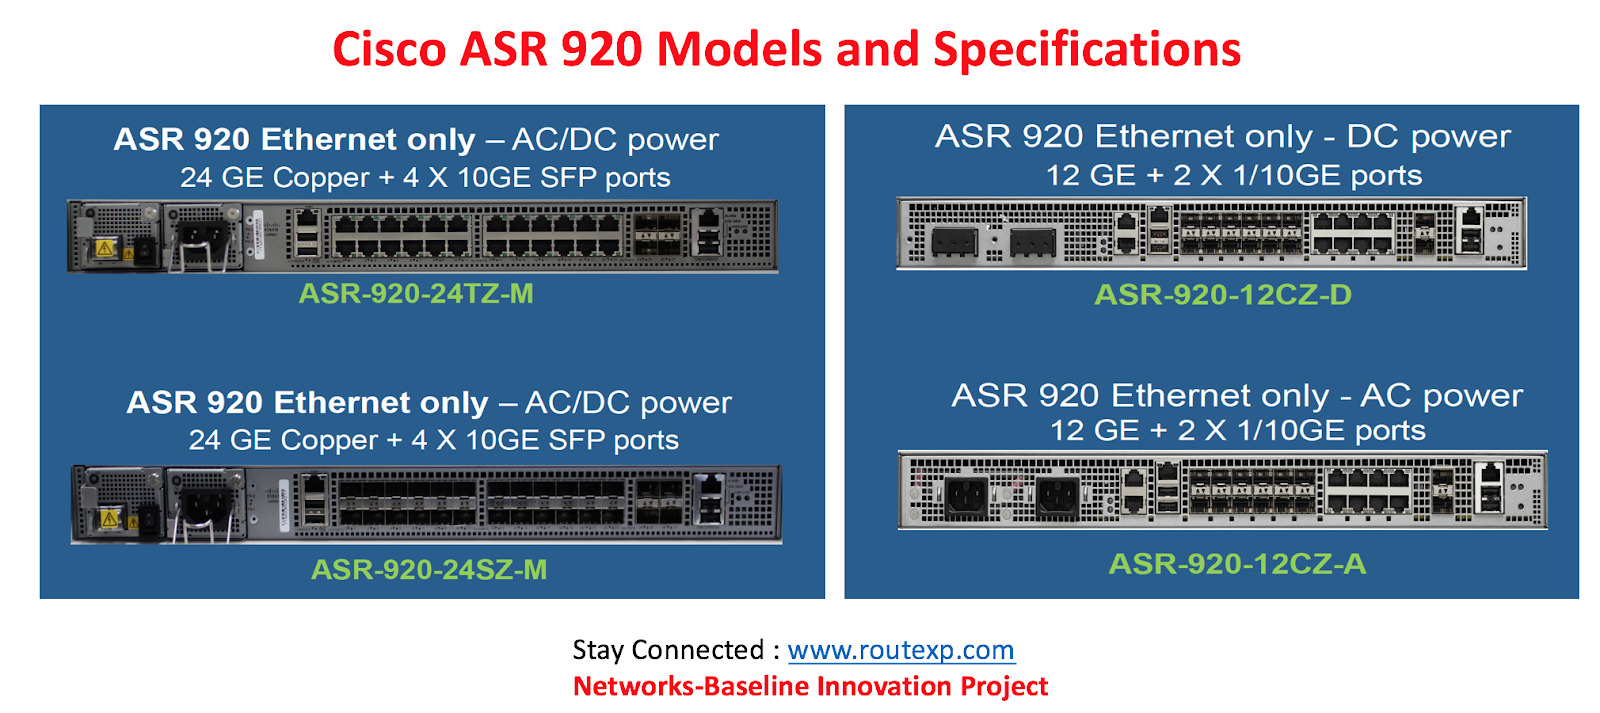 Introduction to Carrier Grade Cisco ASR routers: Cisco ASR